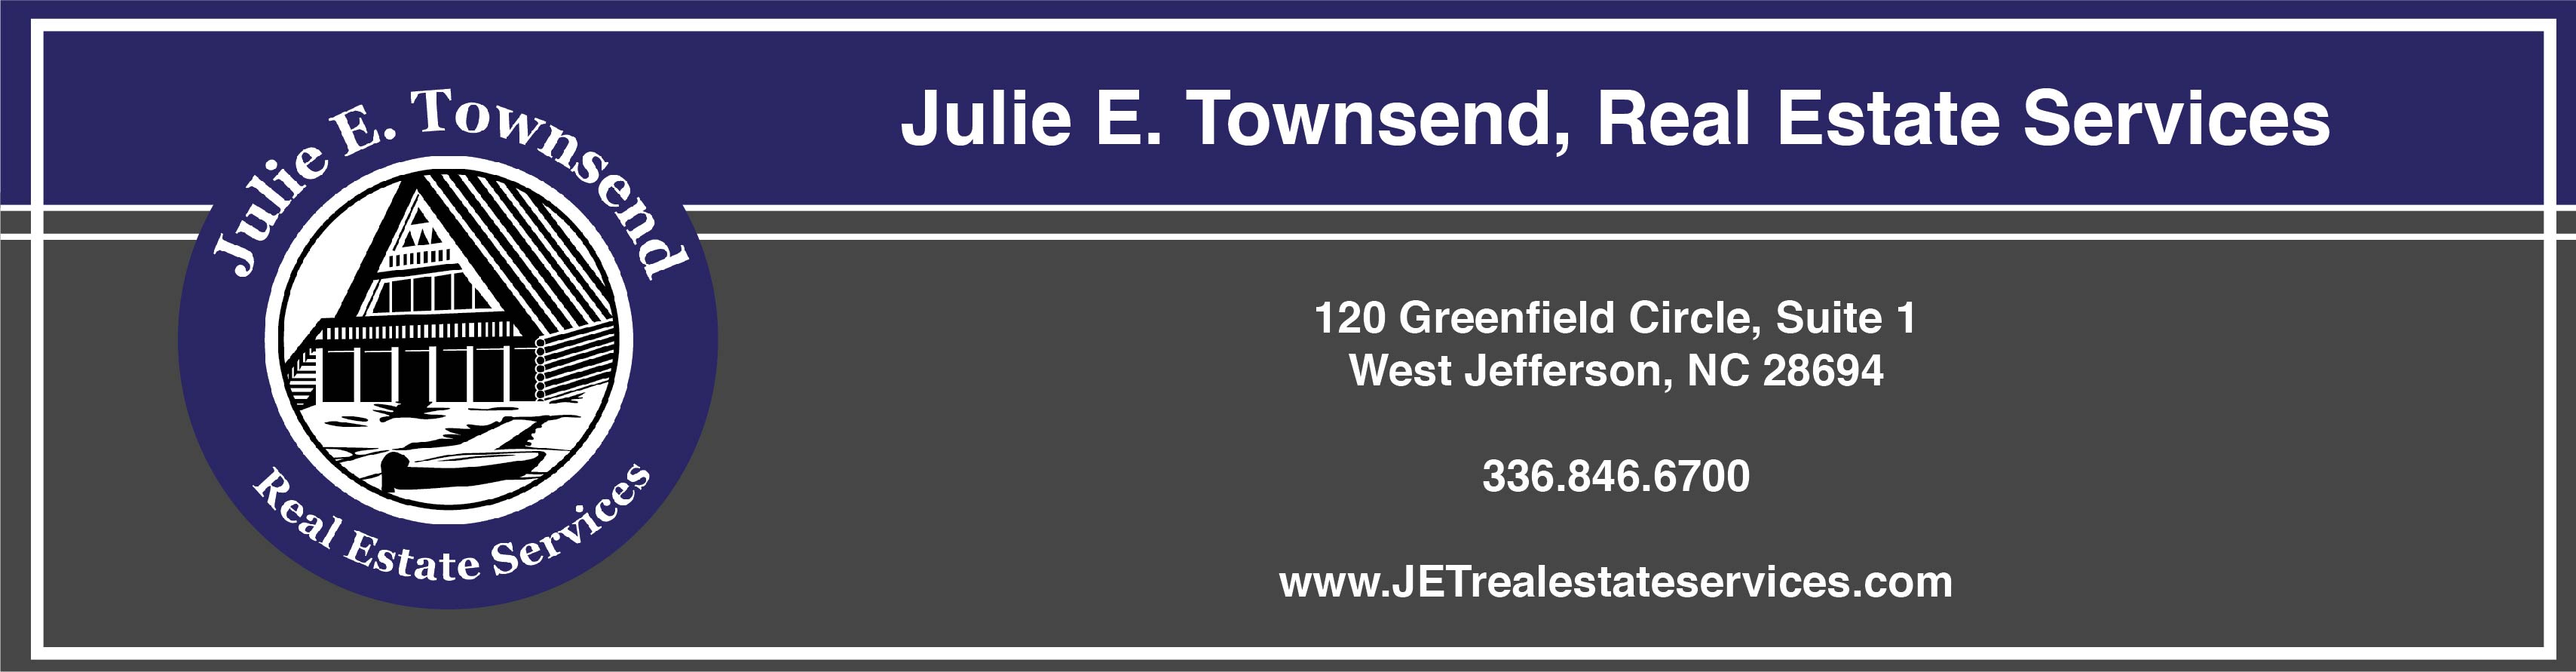 West Jefferson Homes for Sale. Real Estate in West Jefferson, North Carolina  Julie Townsend